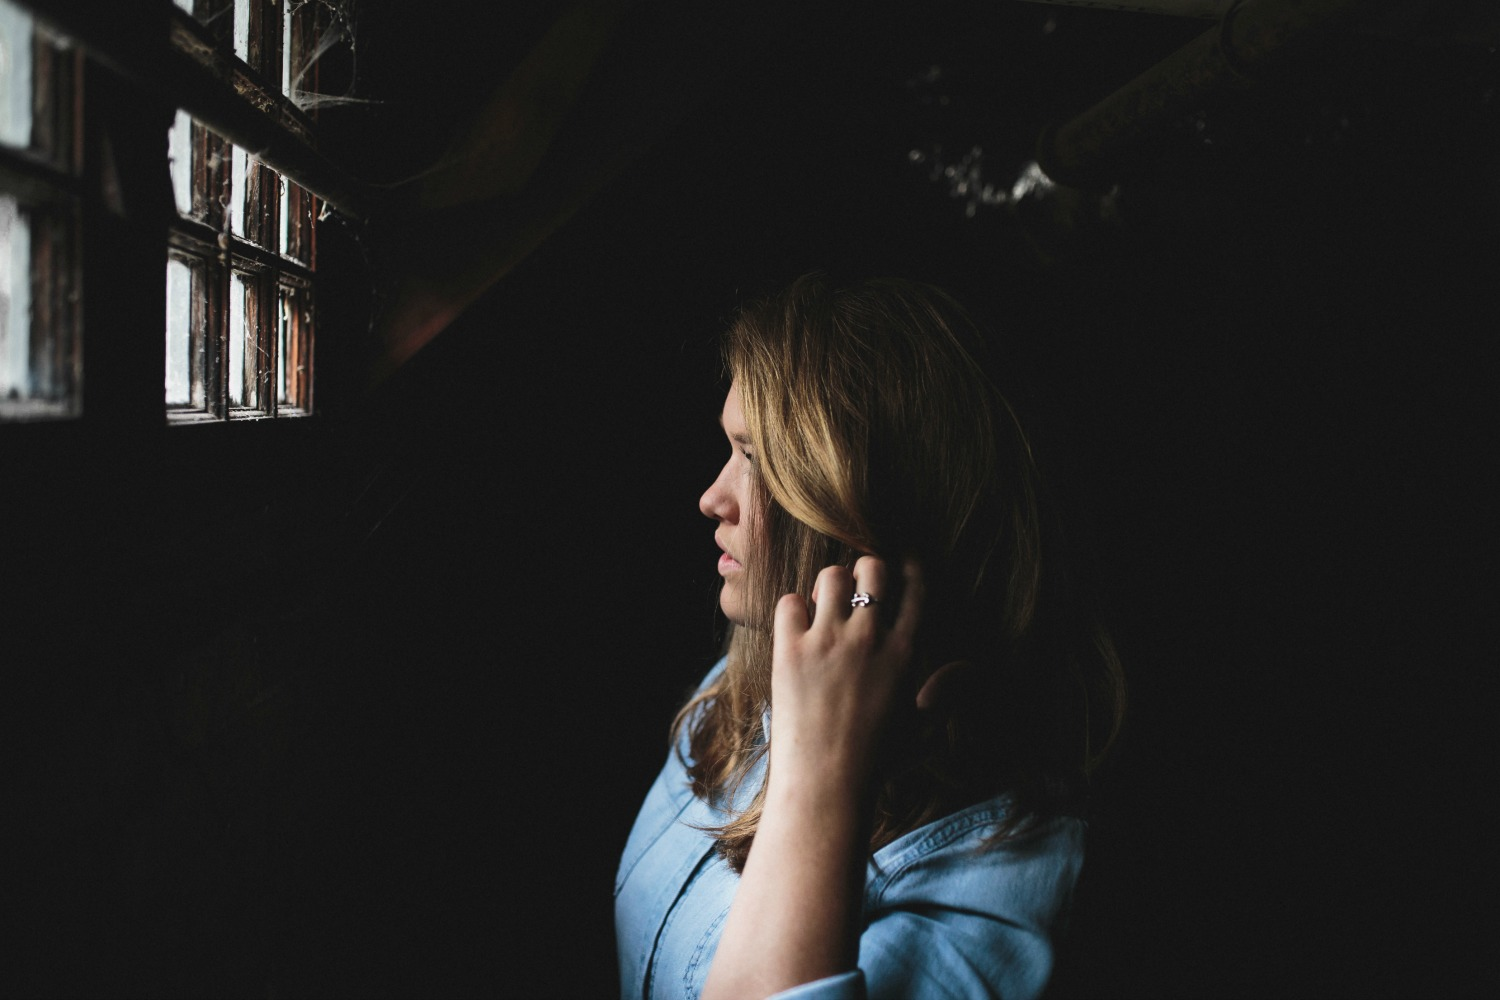 Resources for the Christian Woman Who Is Depressed | Christine M. Chappell | FaithfulSparrow.com